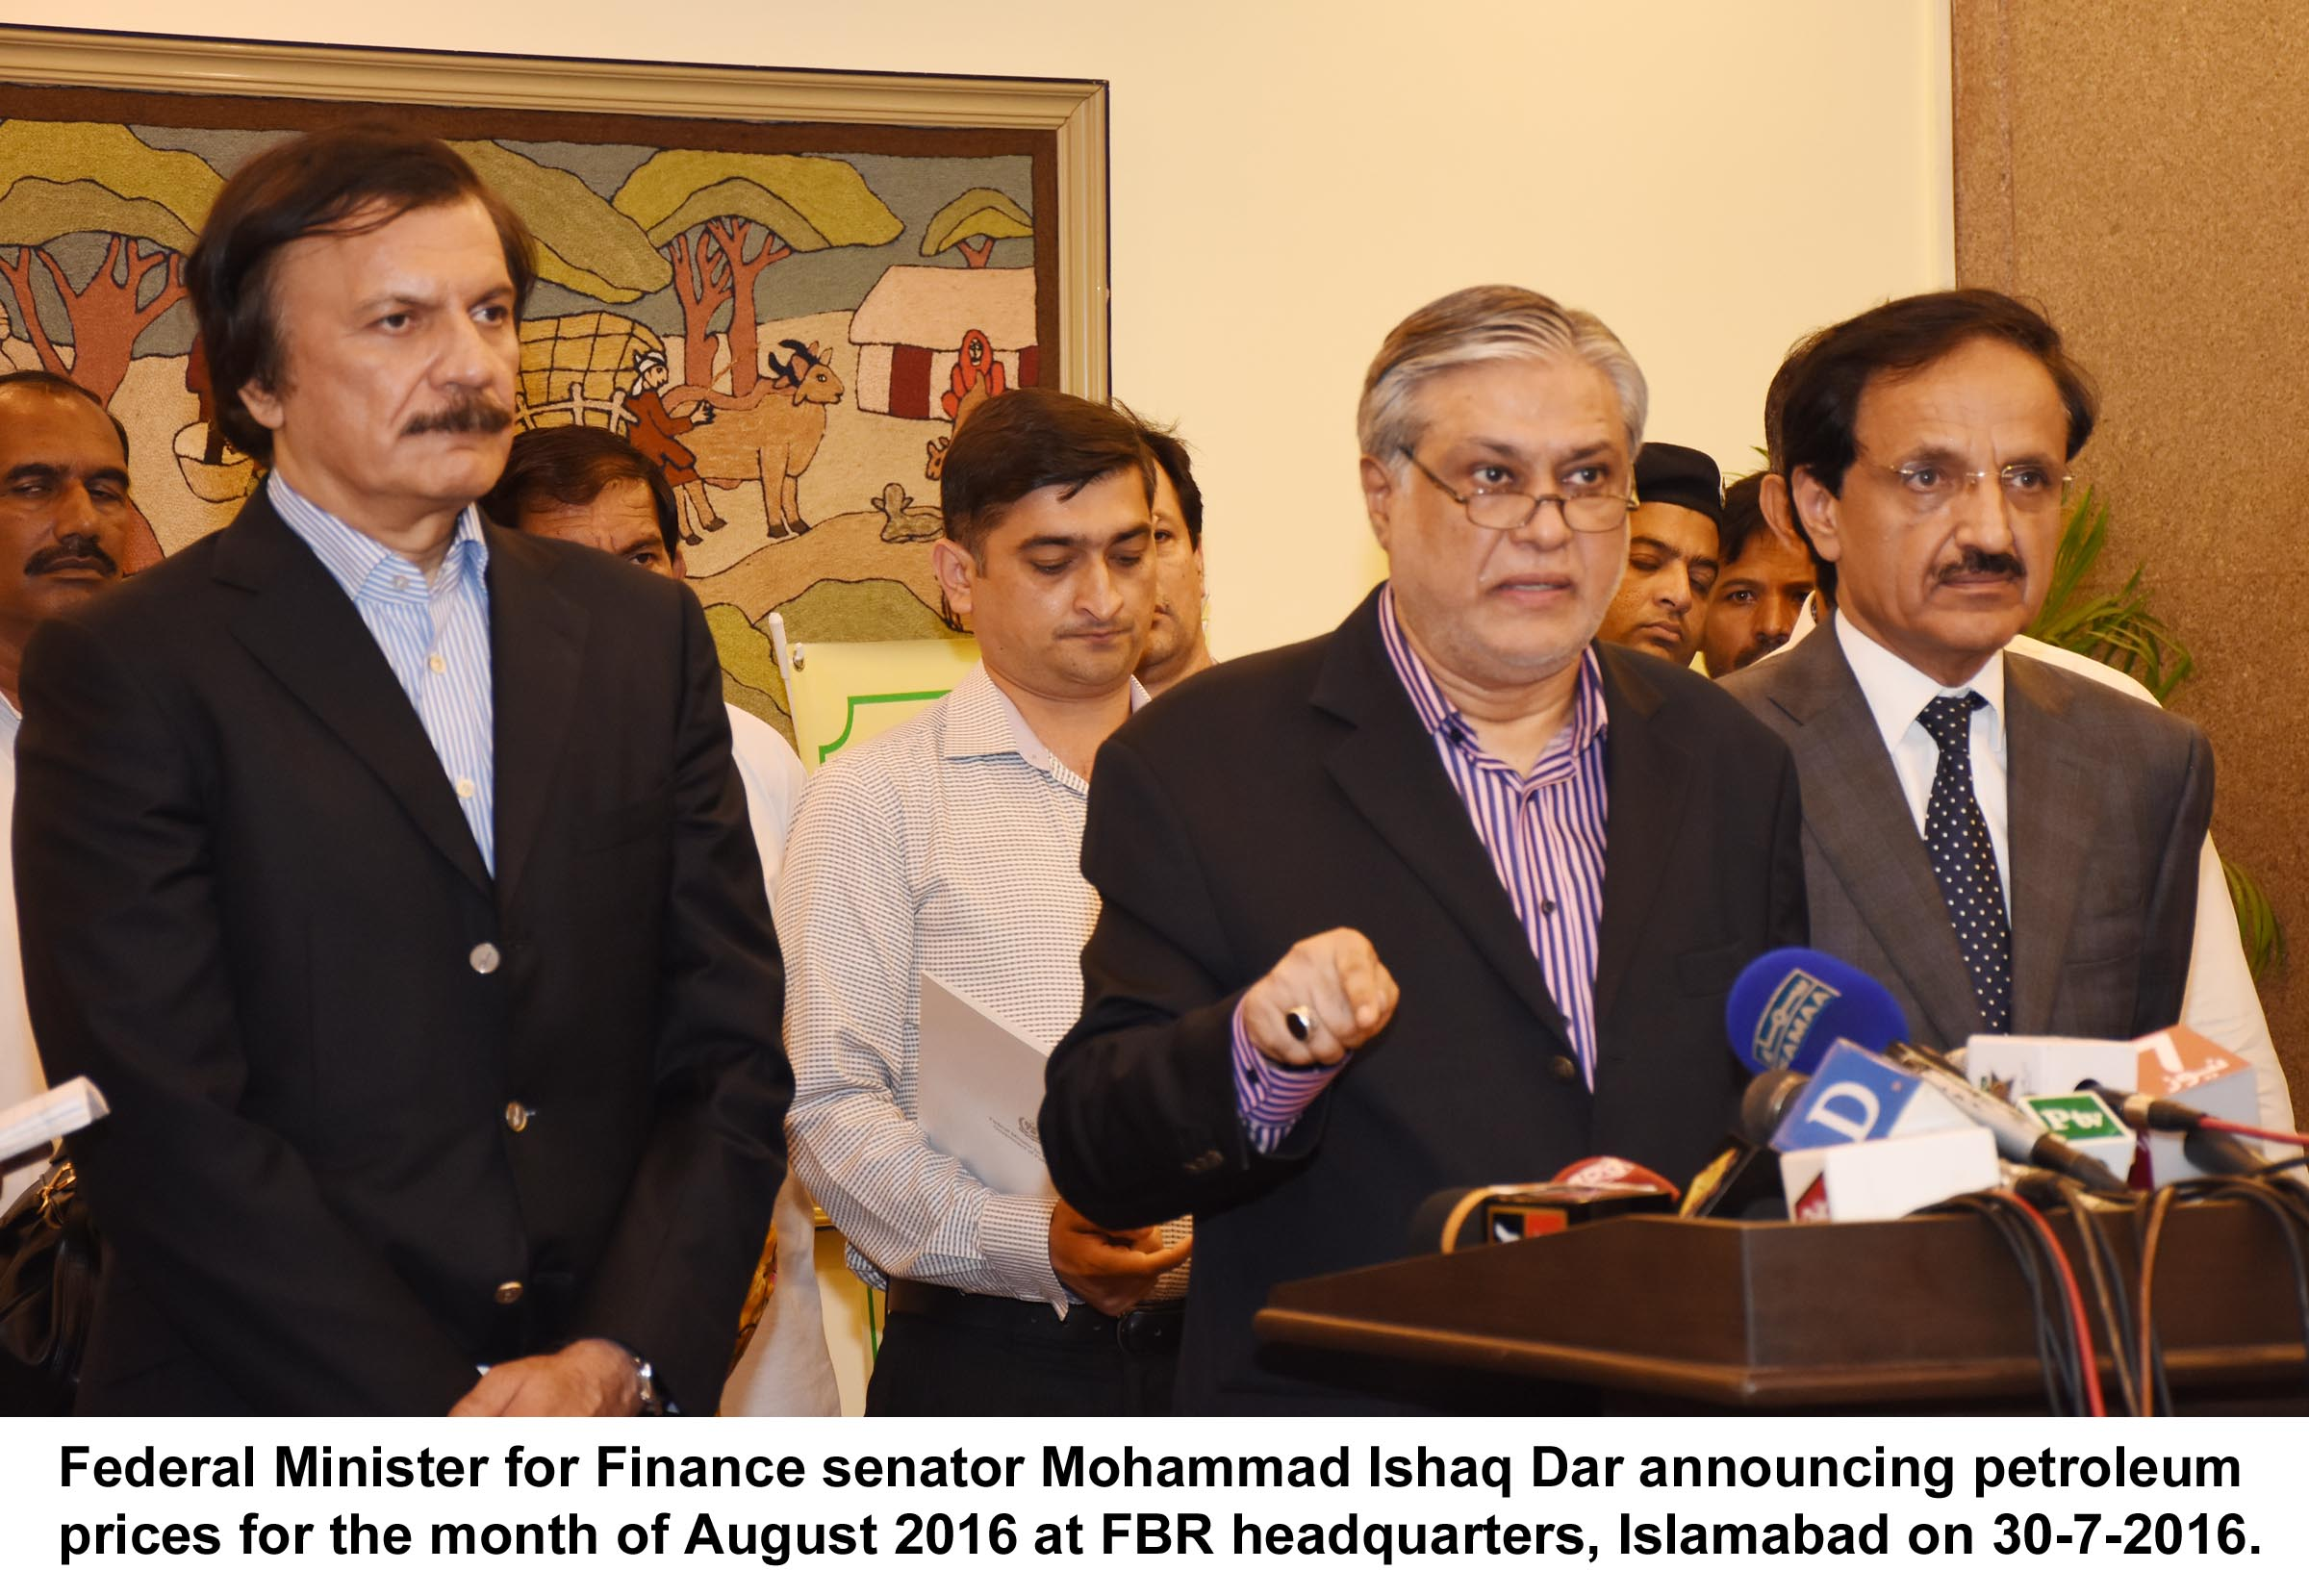 Federal Minister for Finance senator Mohammad Ishaq Dar announcing petroleum prices for the month of August 2016 at FBR headquarters, Islamabad on 30-7-2016.